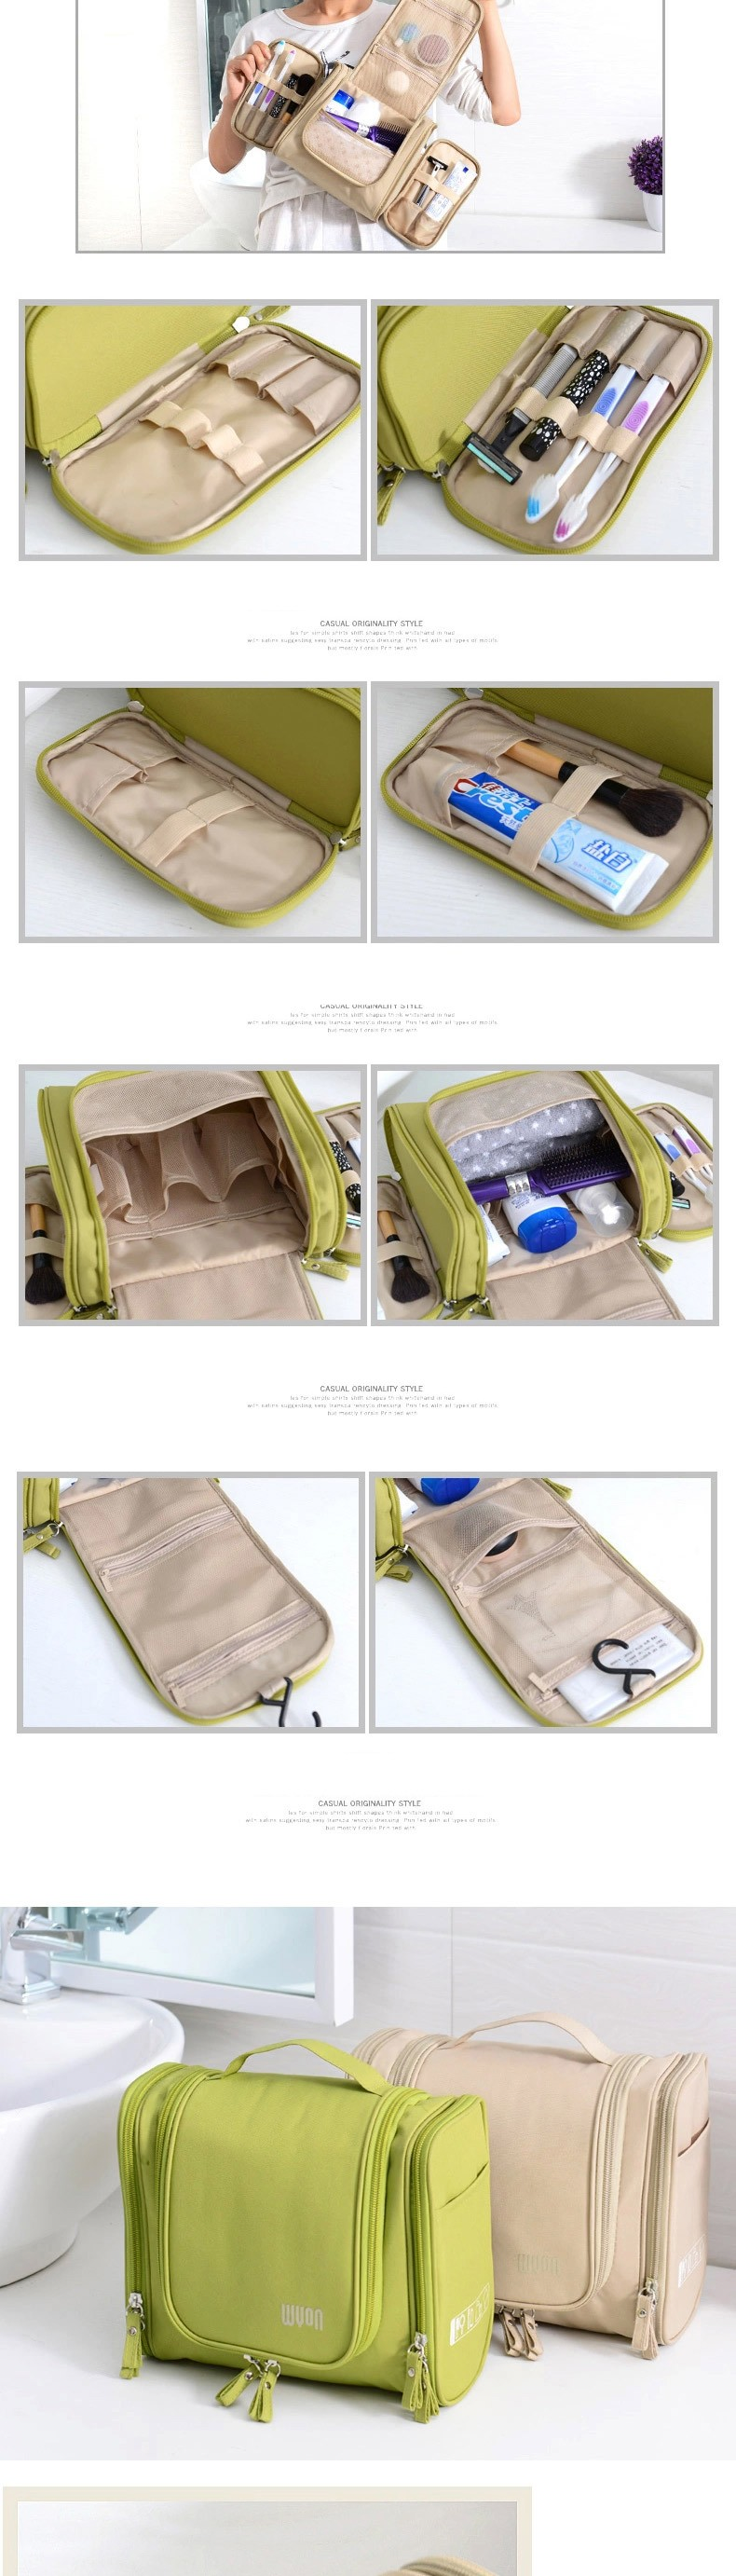 travel organizer (4)